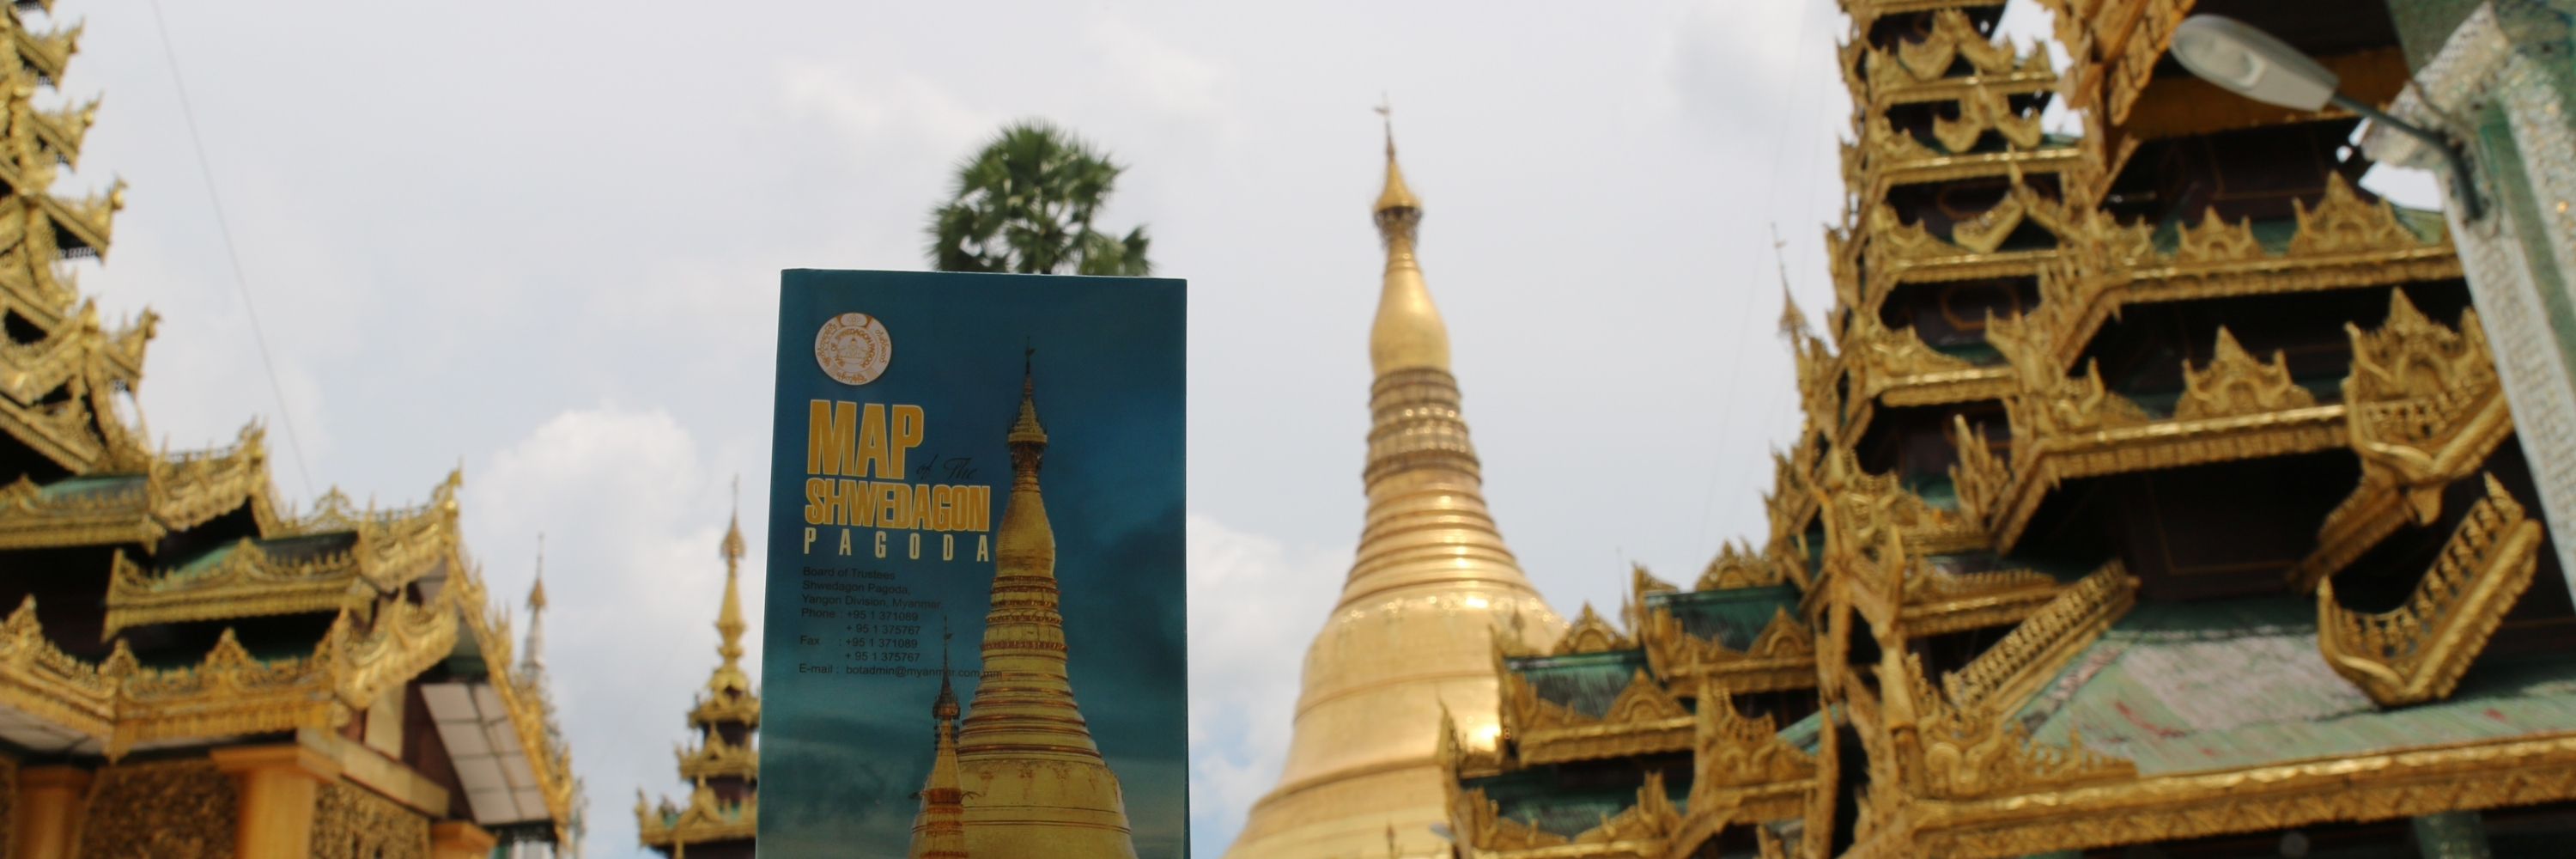 https://gody.vn/blog/annanguyen1051109/post/lich-trinh-myanmar-tu-tuc-7-ngay-6-dem-yangon-bagan-mandalay-inlay-lake-5380